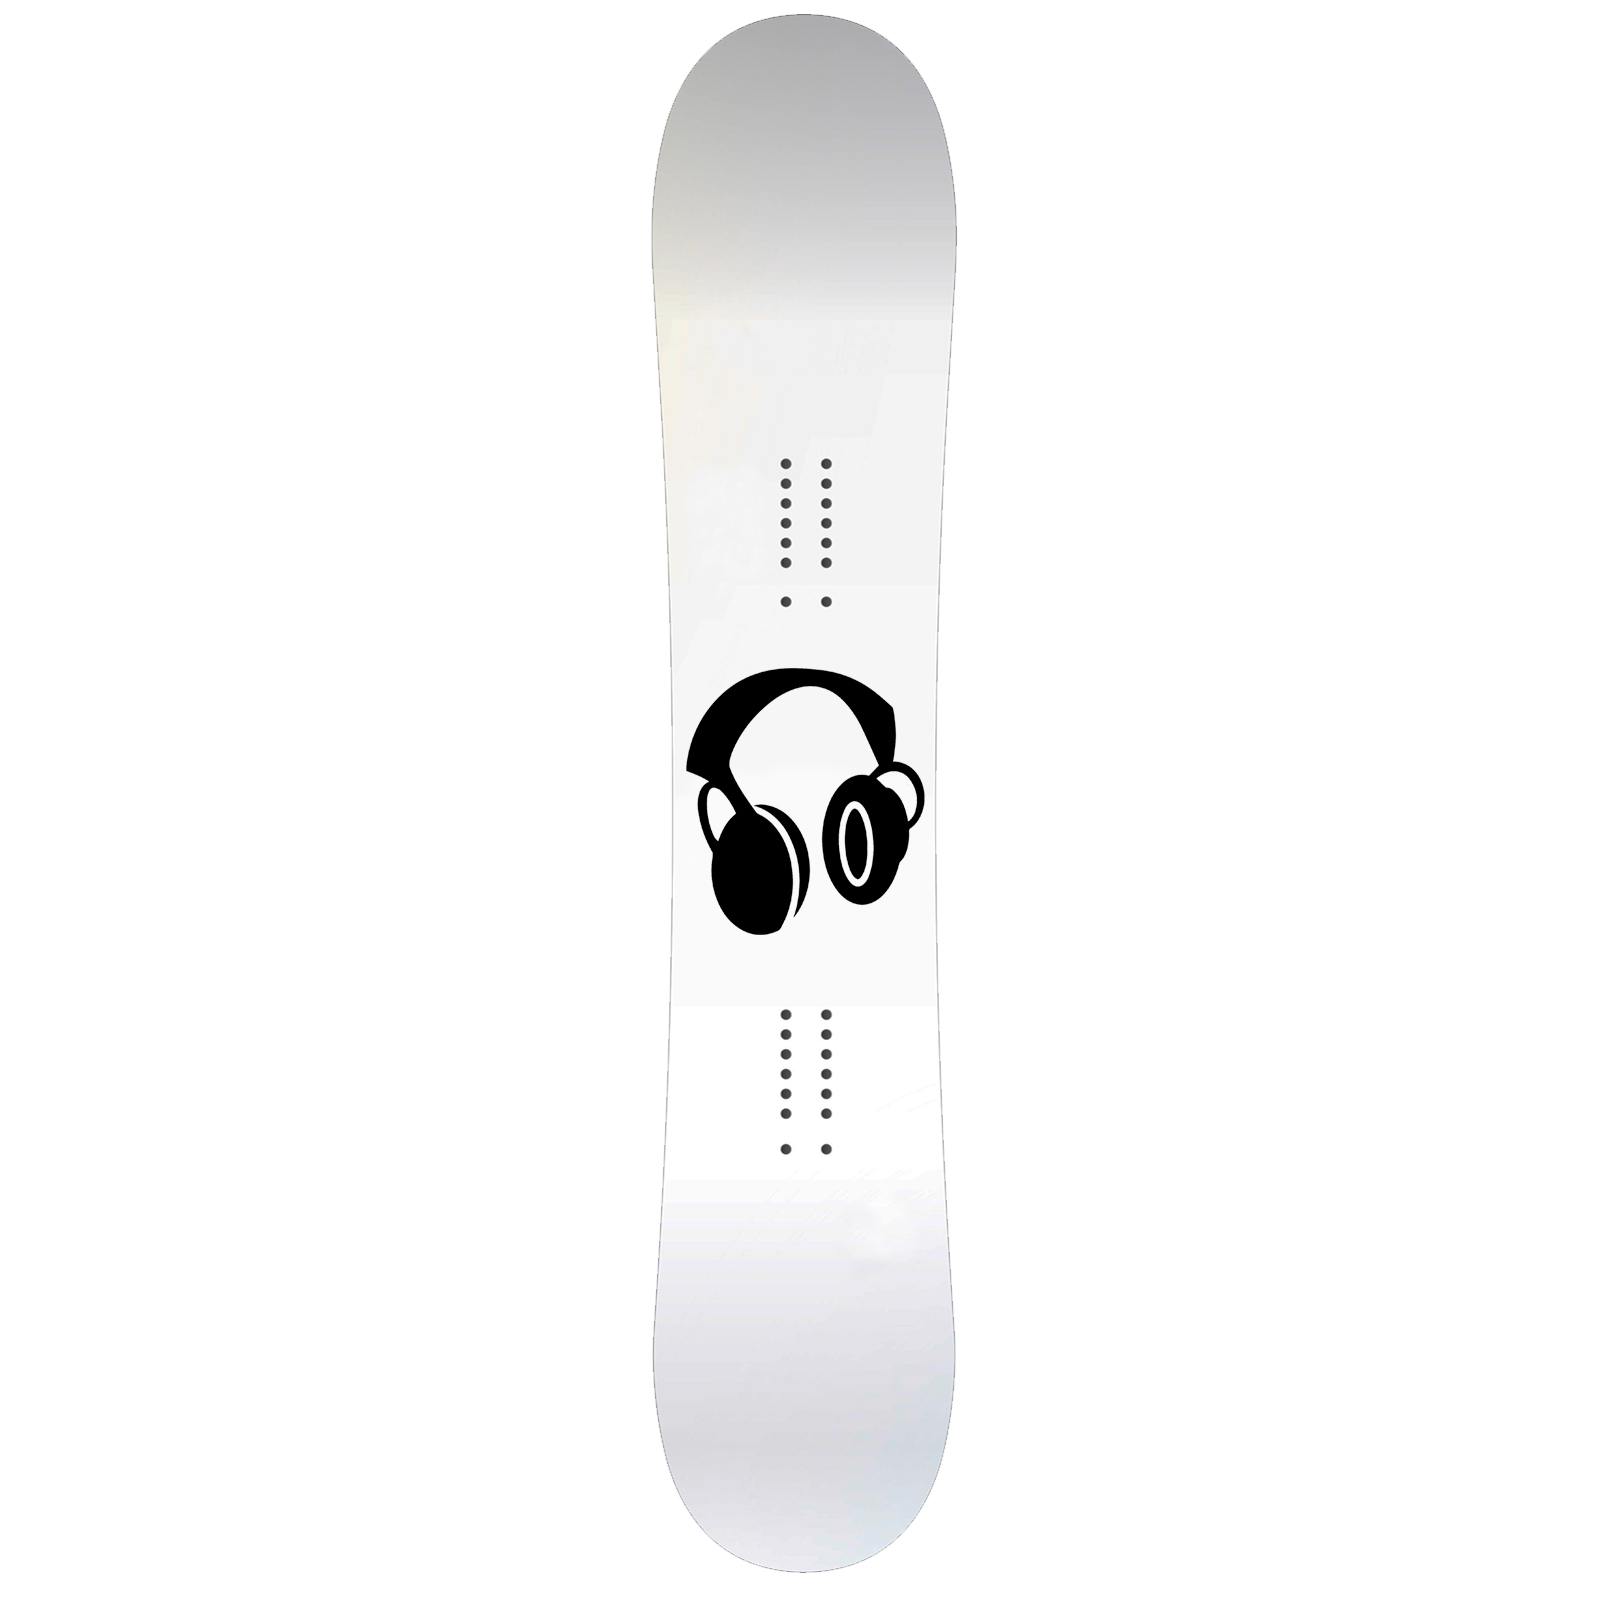 Music Headphones Snowboard Sticker All Weather Vinyl Decal